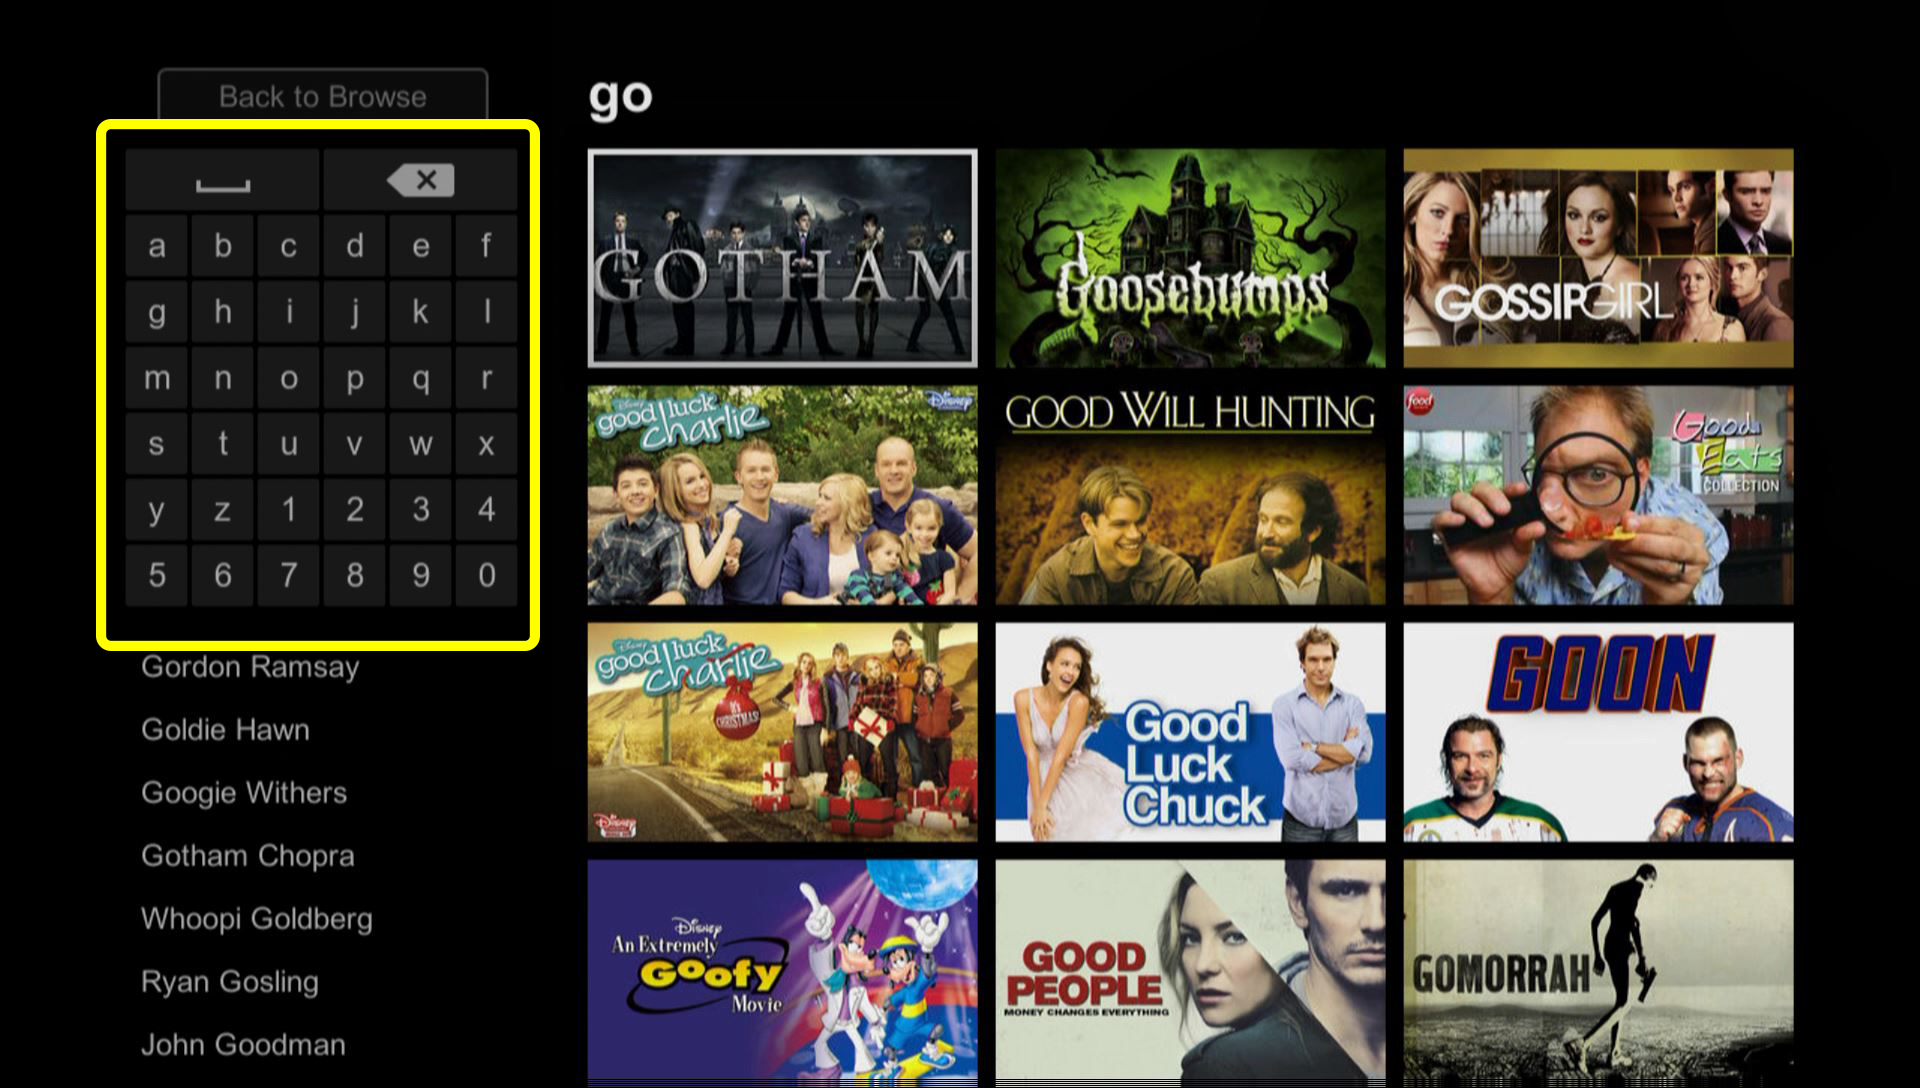 Netflix Search screen (use the remote to move up, down, left, and right to select characters on the on-screen keyboard)